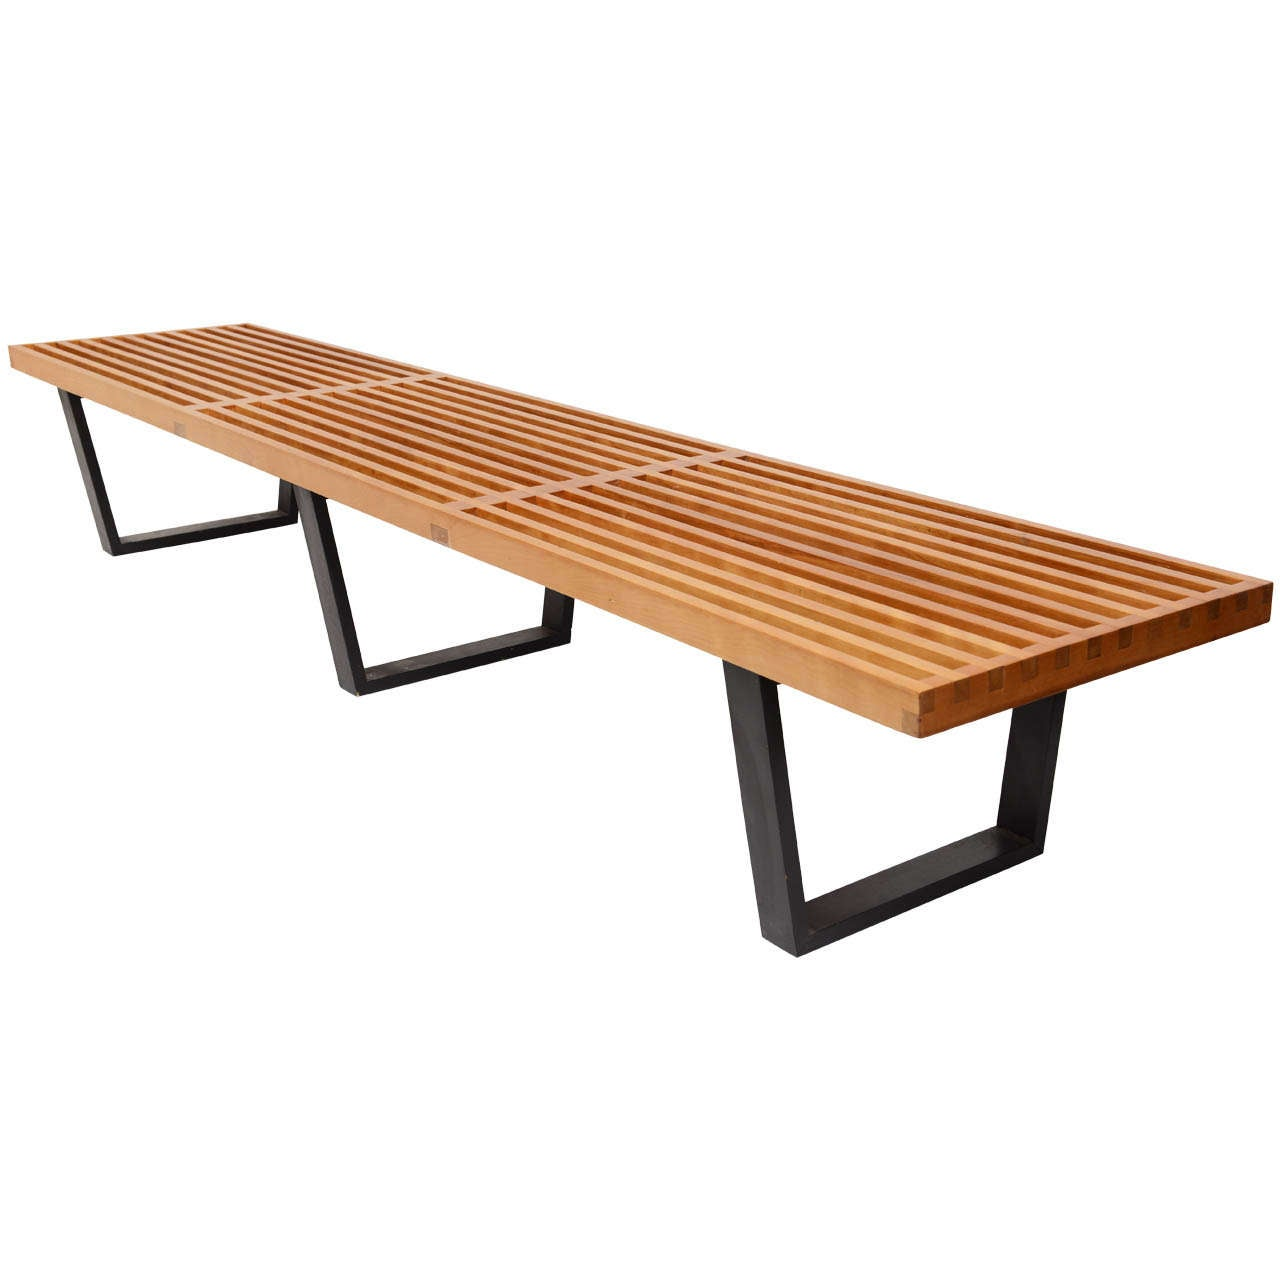 George Nelson Slat Bench 4992 At 1stdibs